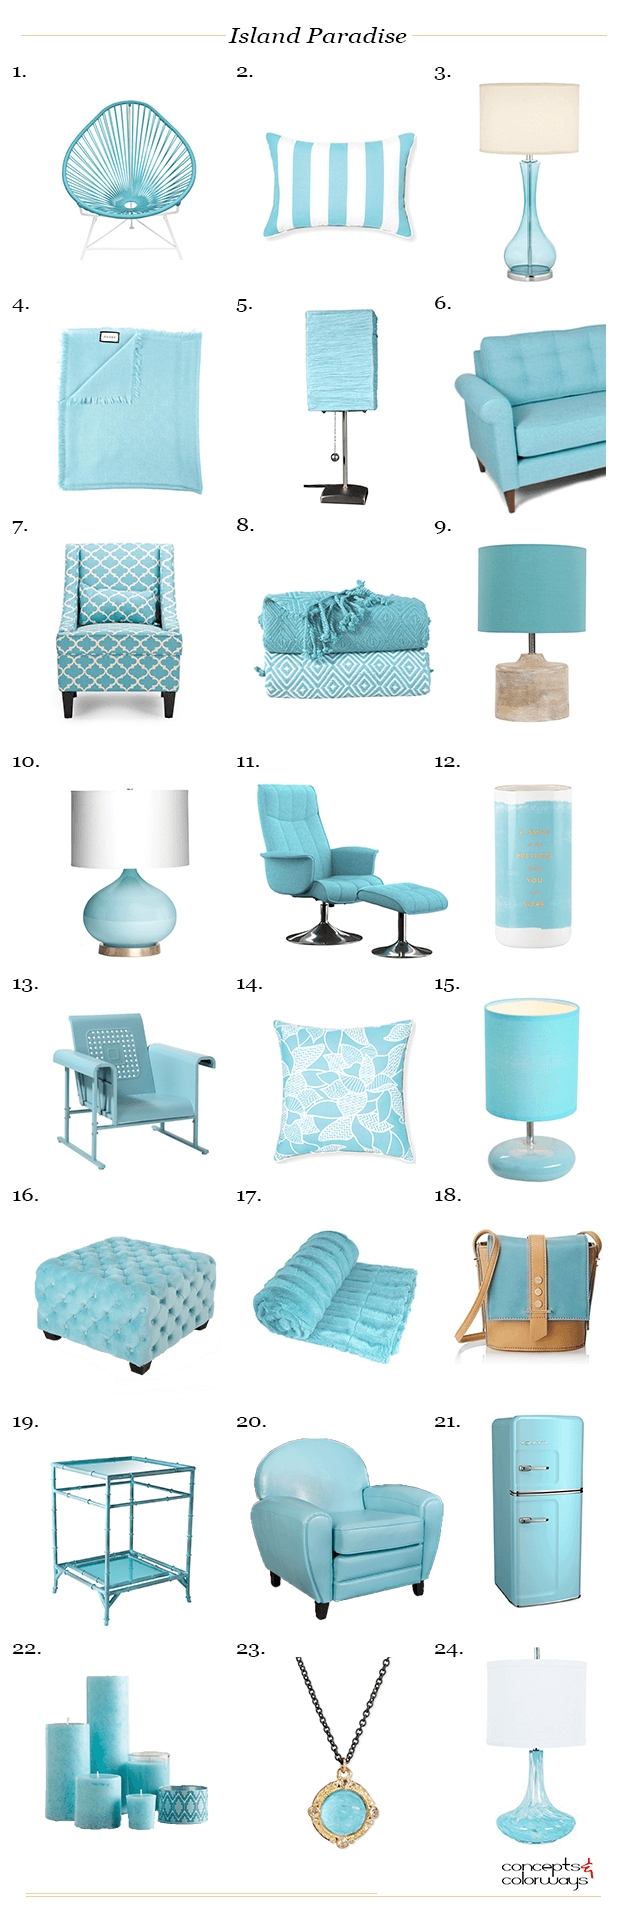 pantone island paradise, interior design product roundup, 2017 color trends, color for interiors, caribbean blue, light turquoise, aqua blue, tiffany blue, bright blue